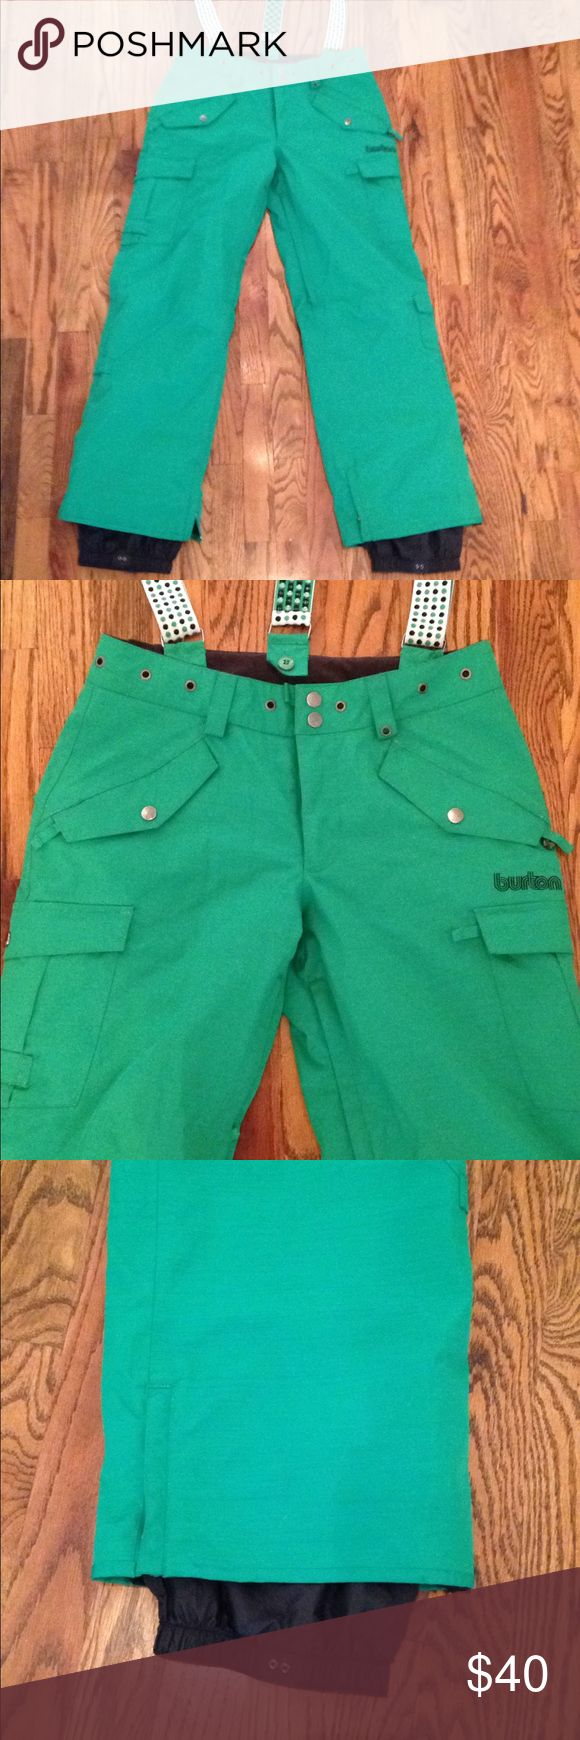 Burton Snow Boarding Pants ❄️ Bright and cheery Kelly green Boarding pants with detachable suspenders, belt loops, thigh vents and plenty of pockets. Waterproof and rad!  Only wear is as seen in photos on the bum. Everything else looks great! Burton Pants